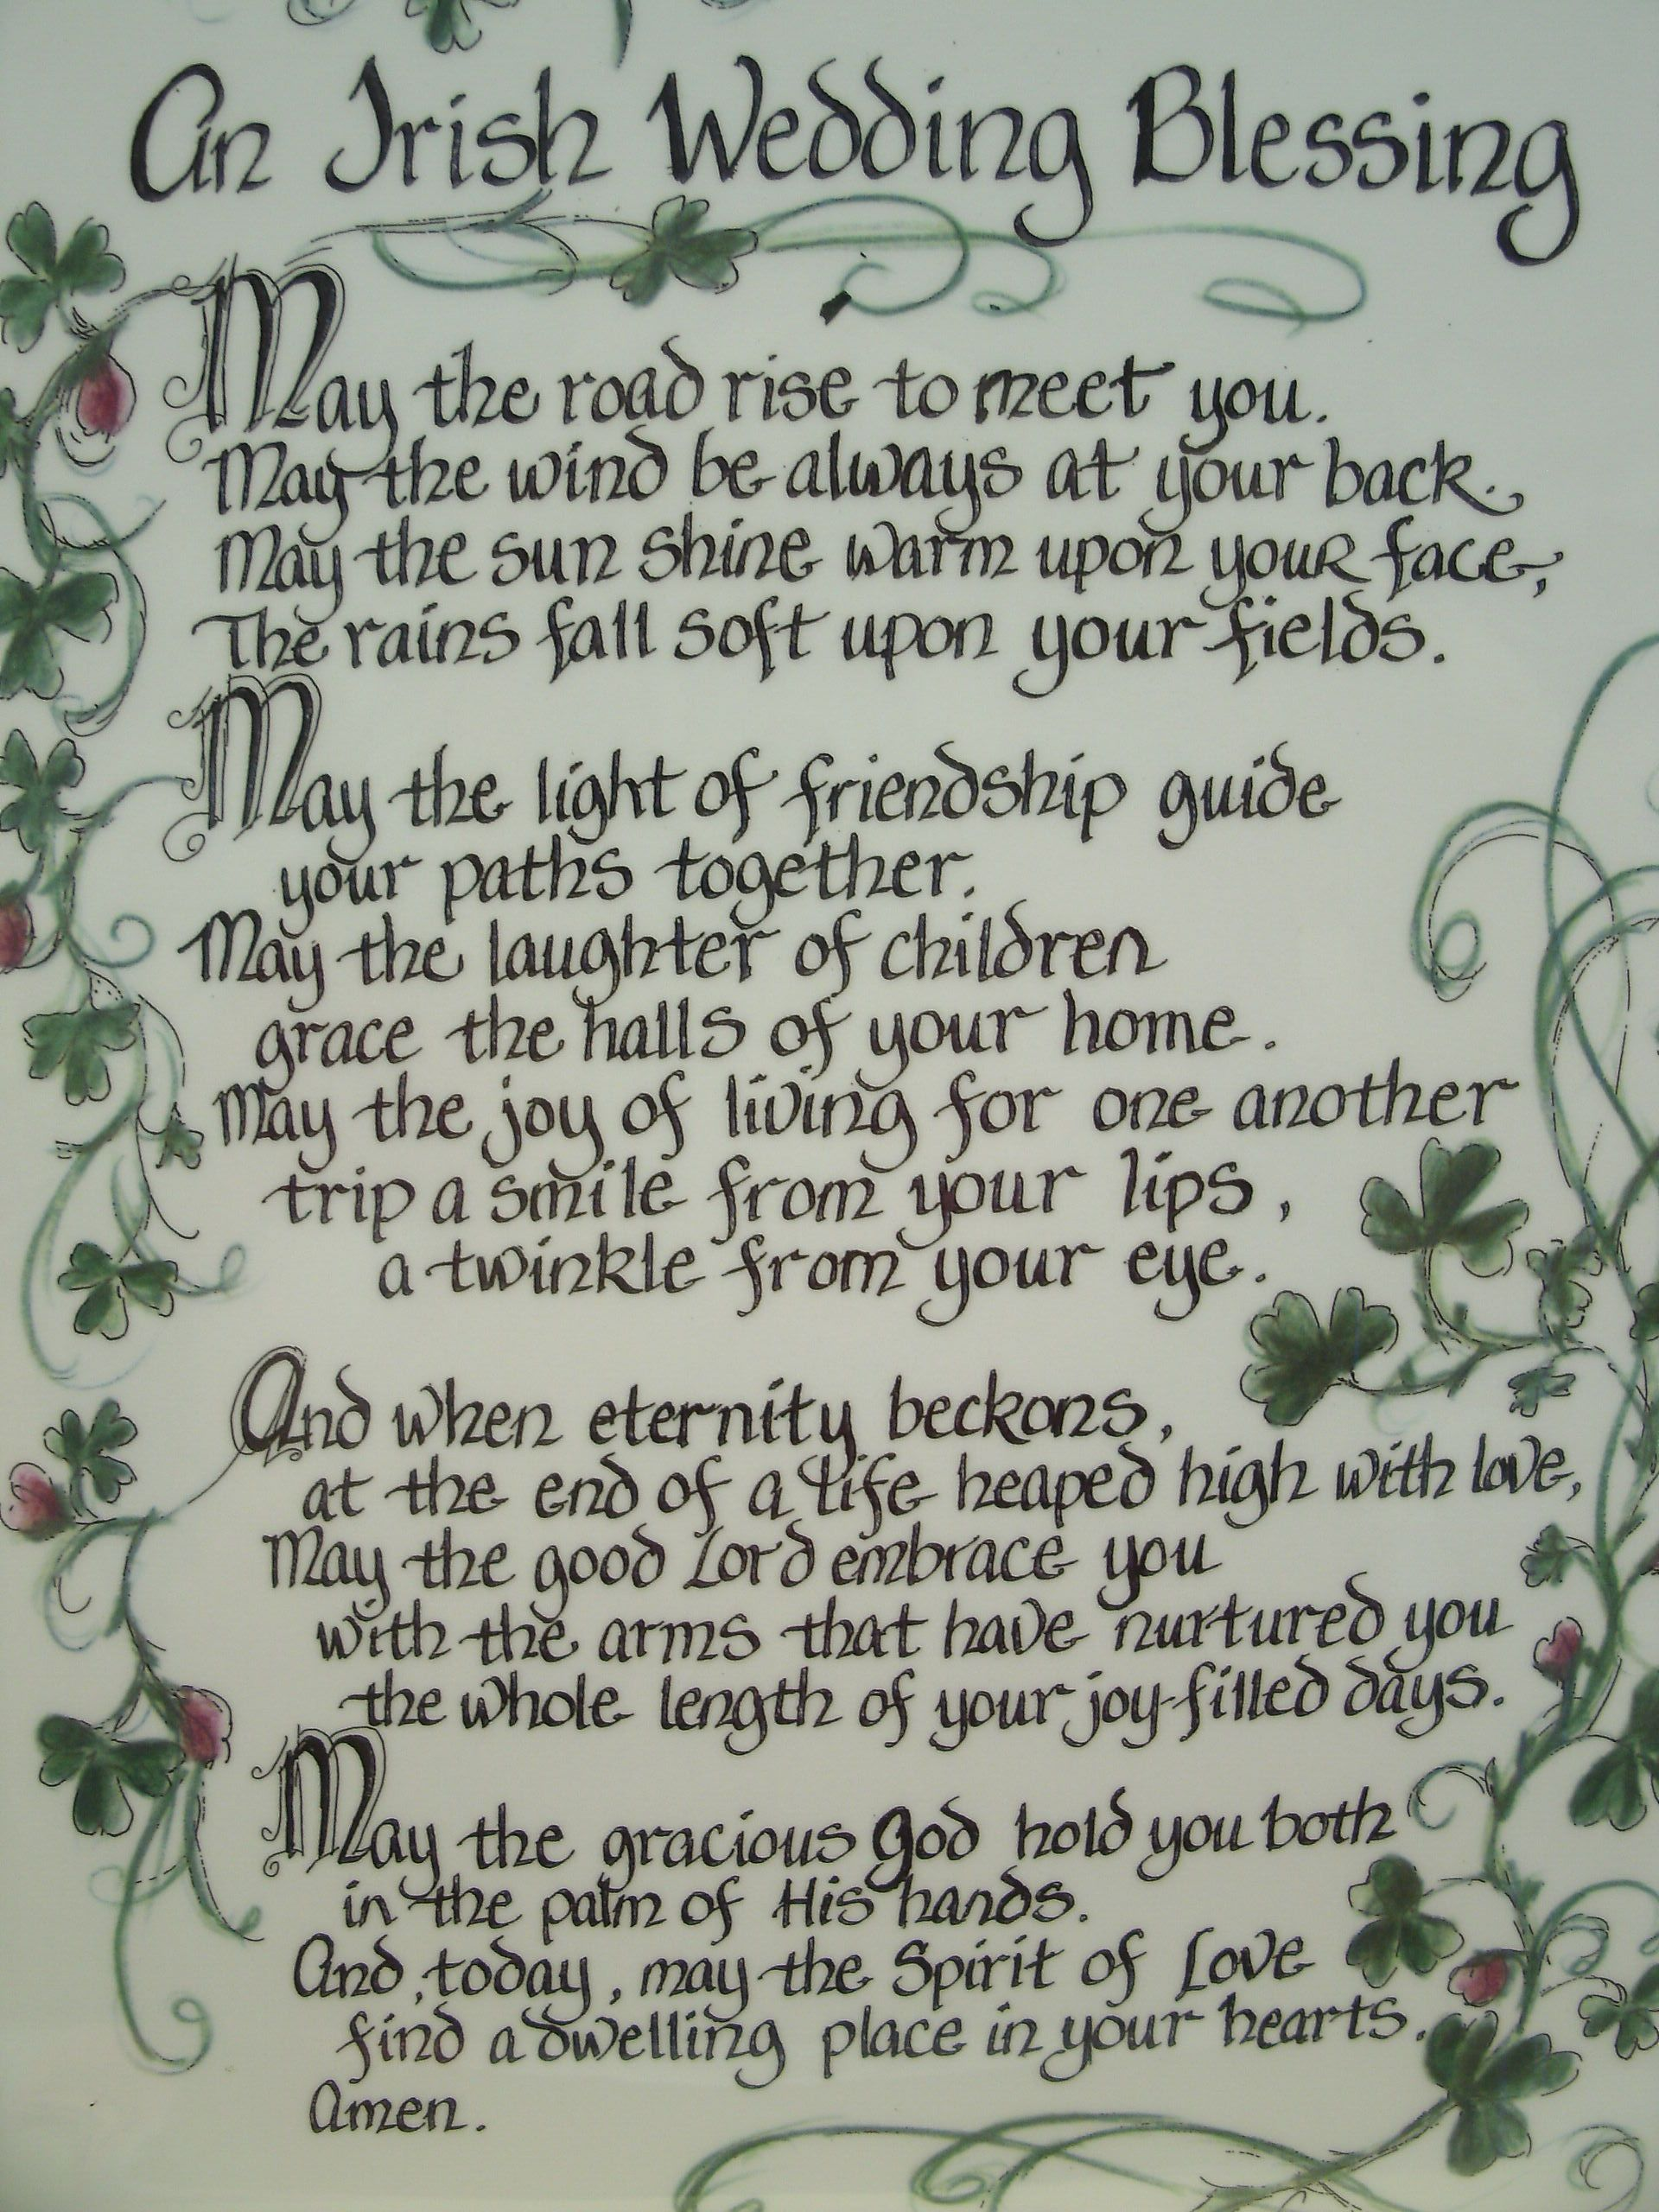 Irish Wedding Blessing I need an Irish